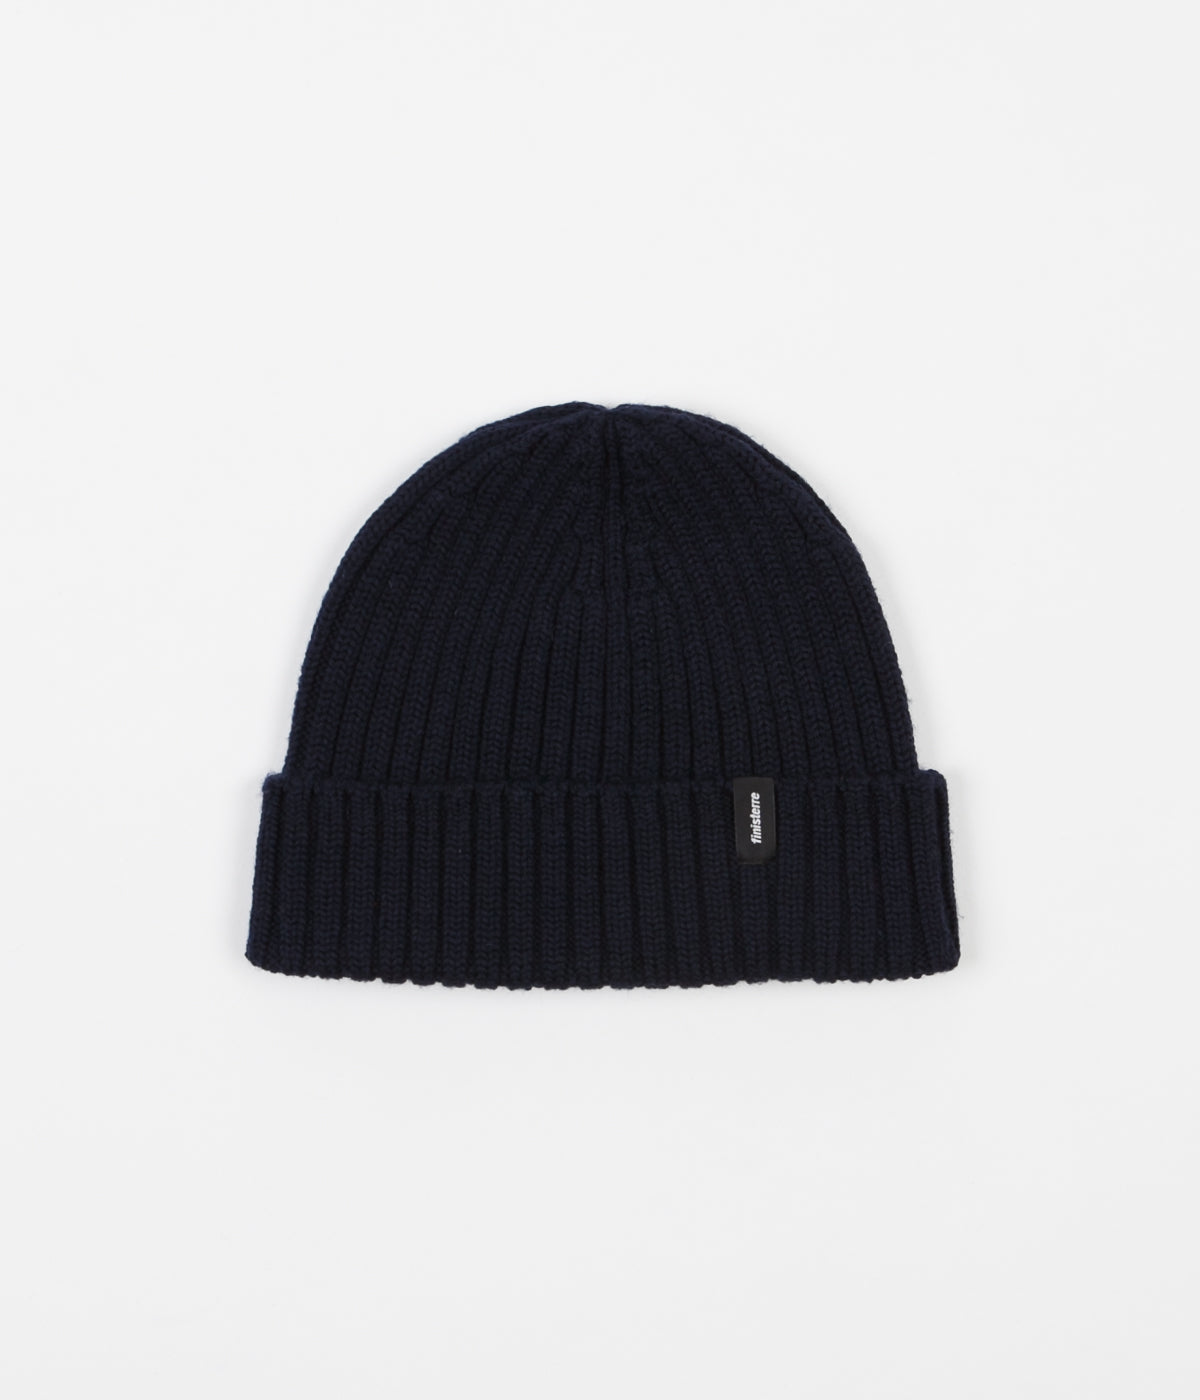 Finisterre Merino Fisherman Beanie - Navy